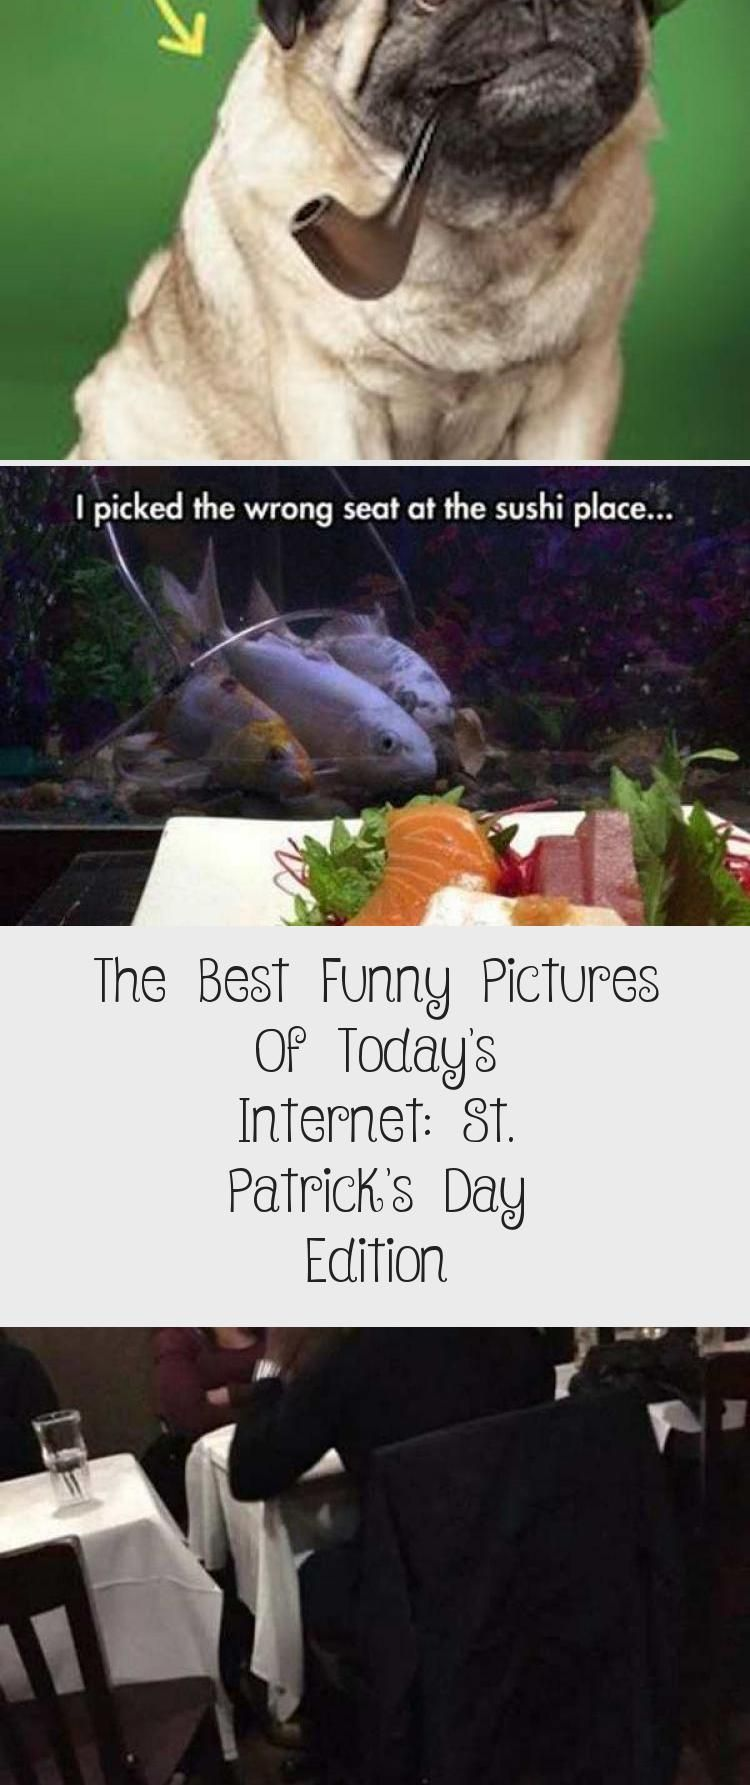 The Best Funny Pictures Of Today8217s Internet St Patrick8217s Day Edition The Best Funny Pictures Of Todays Internet